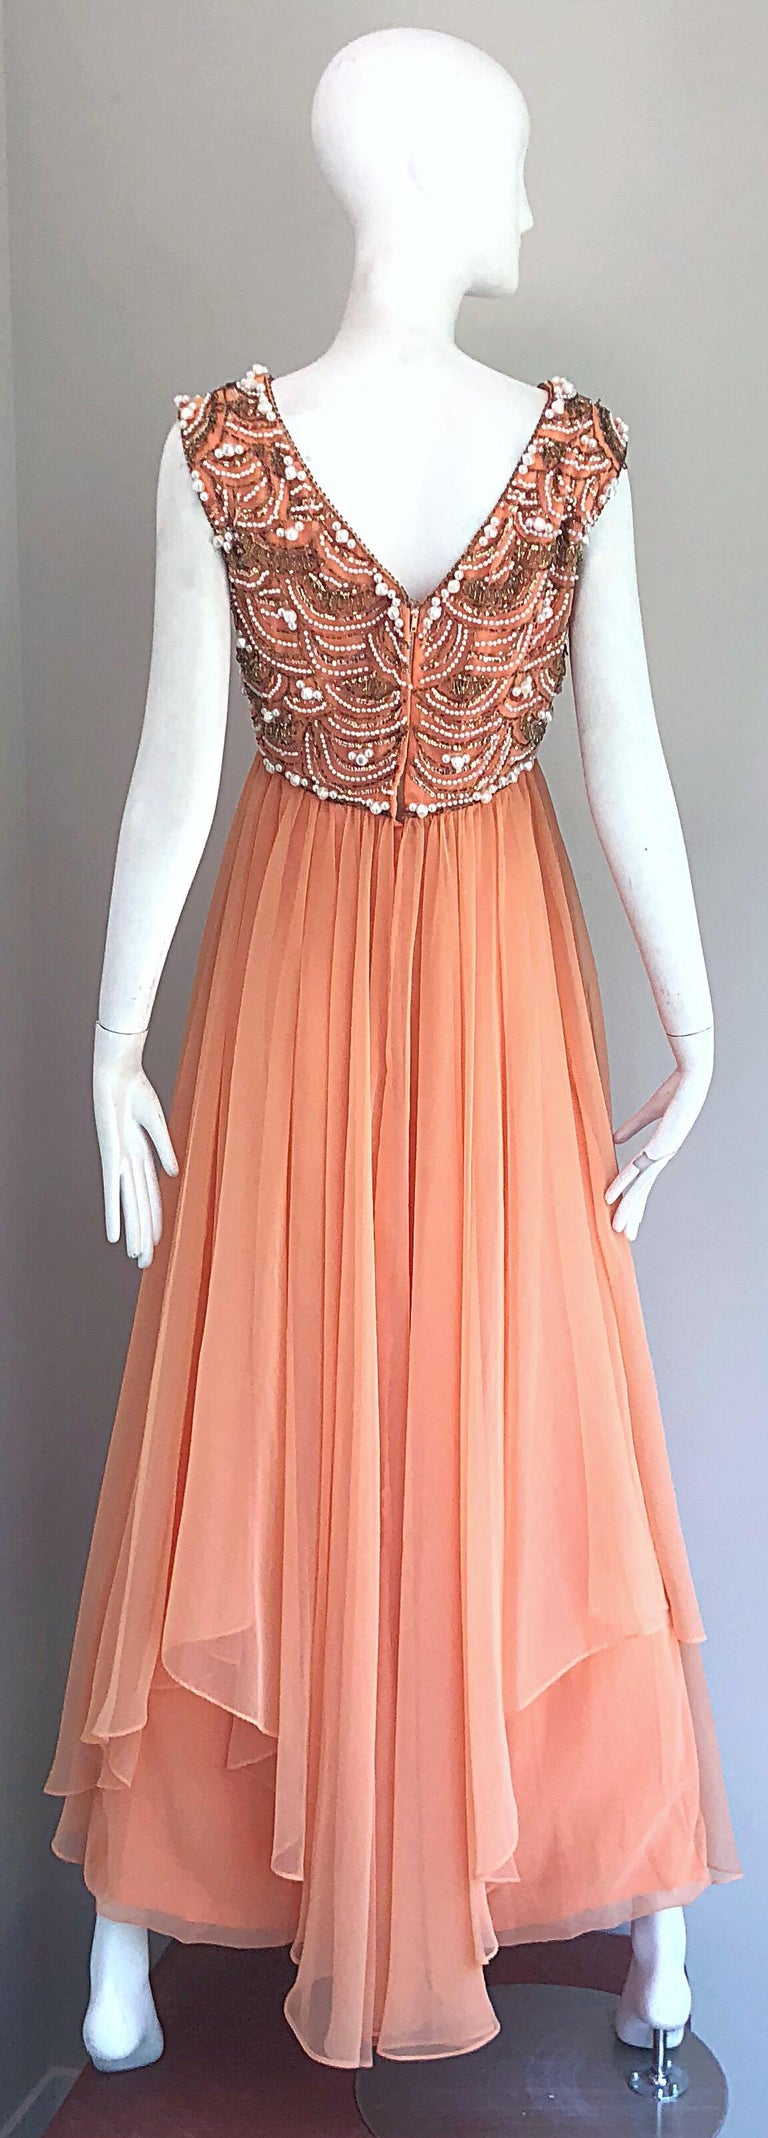 1960s Isabell Gerhart Sherbet Coral Demi Couture Beaded Chiffon 60s Gown Dress In Excellent Condition For Sale In Chicago, IL